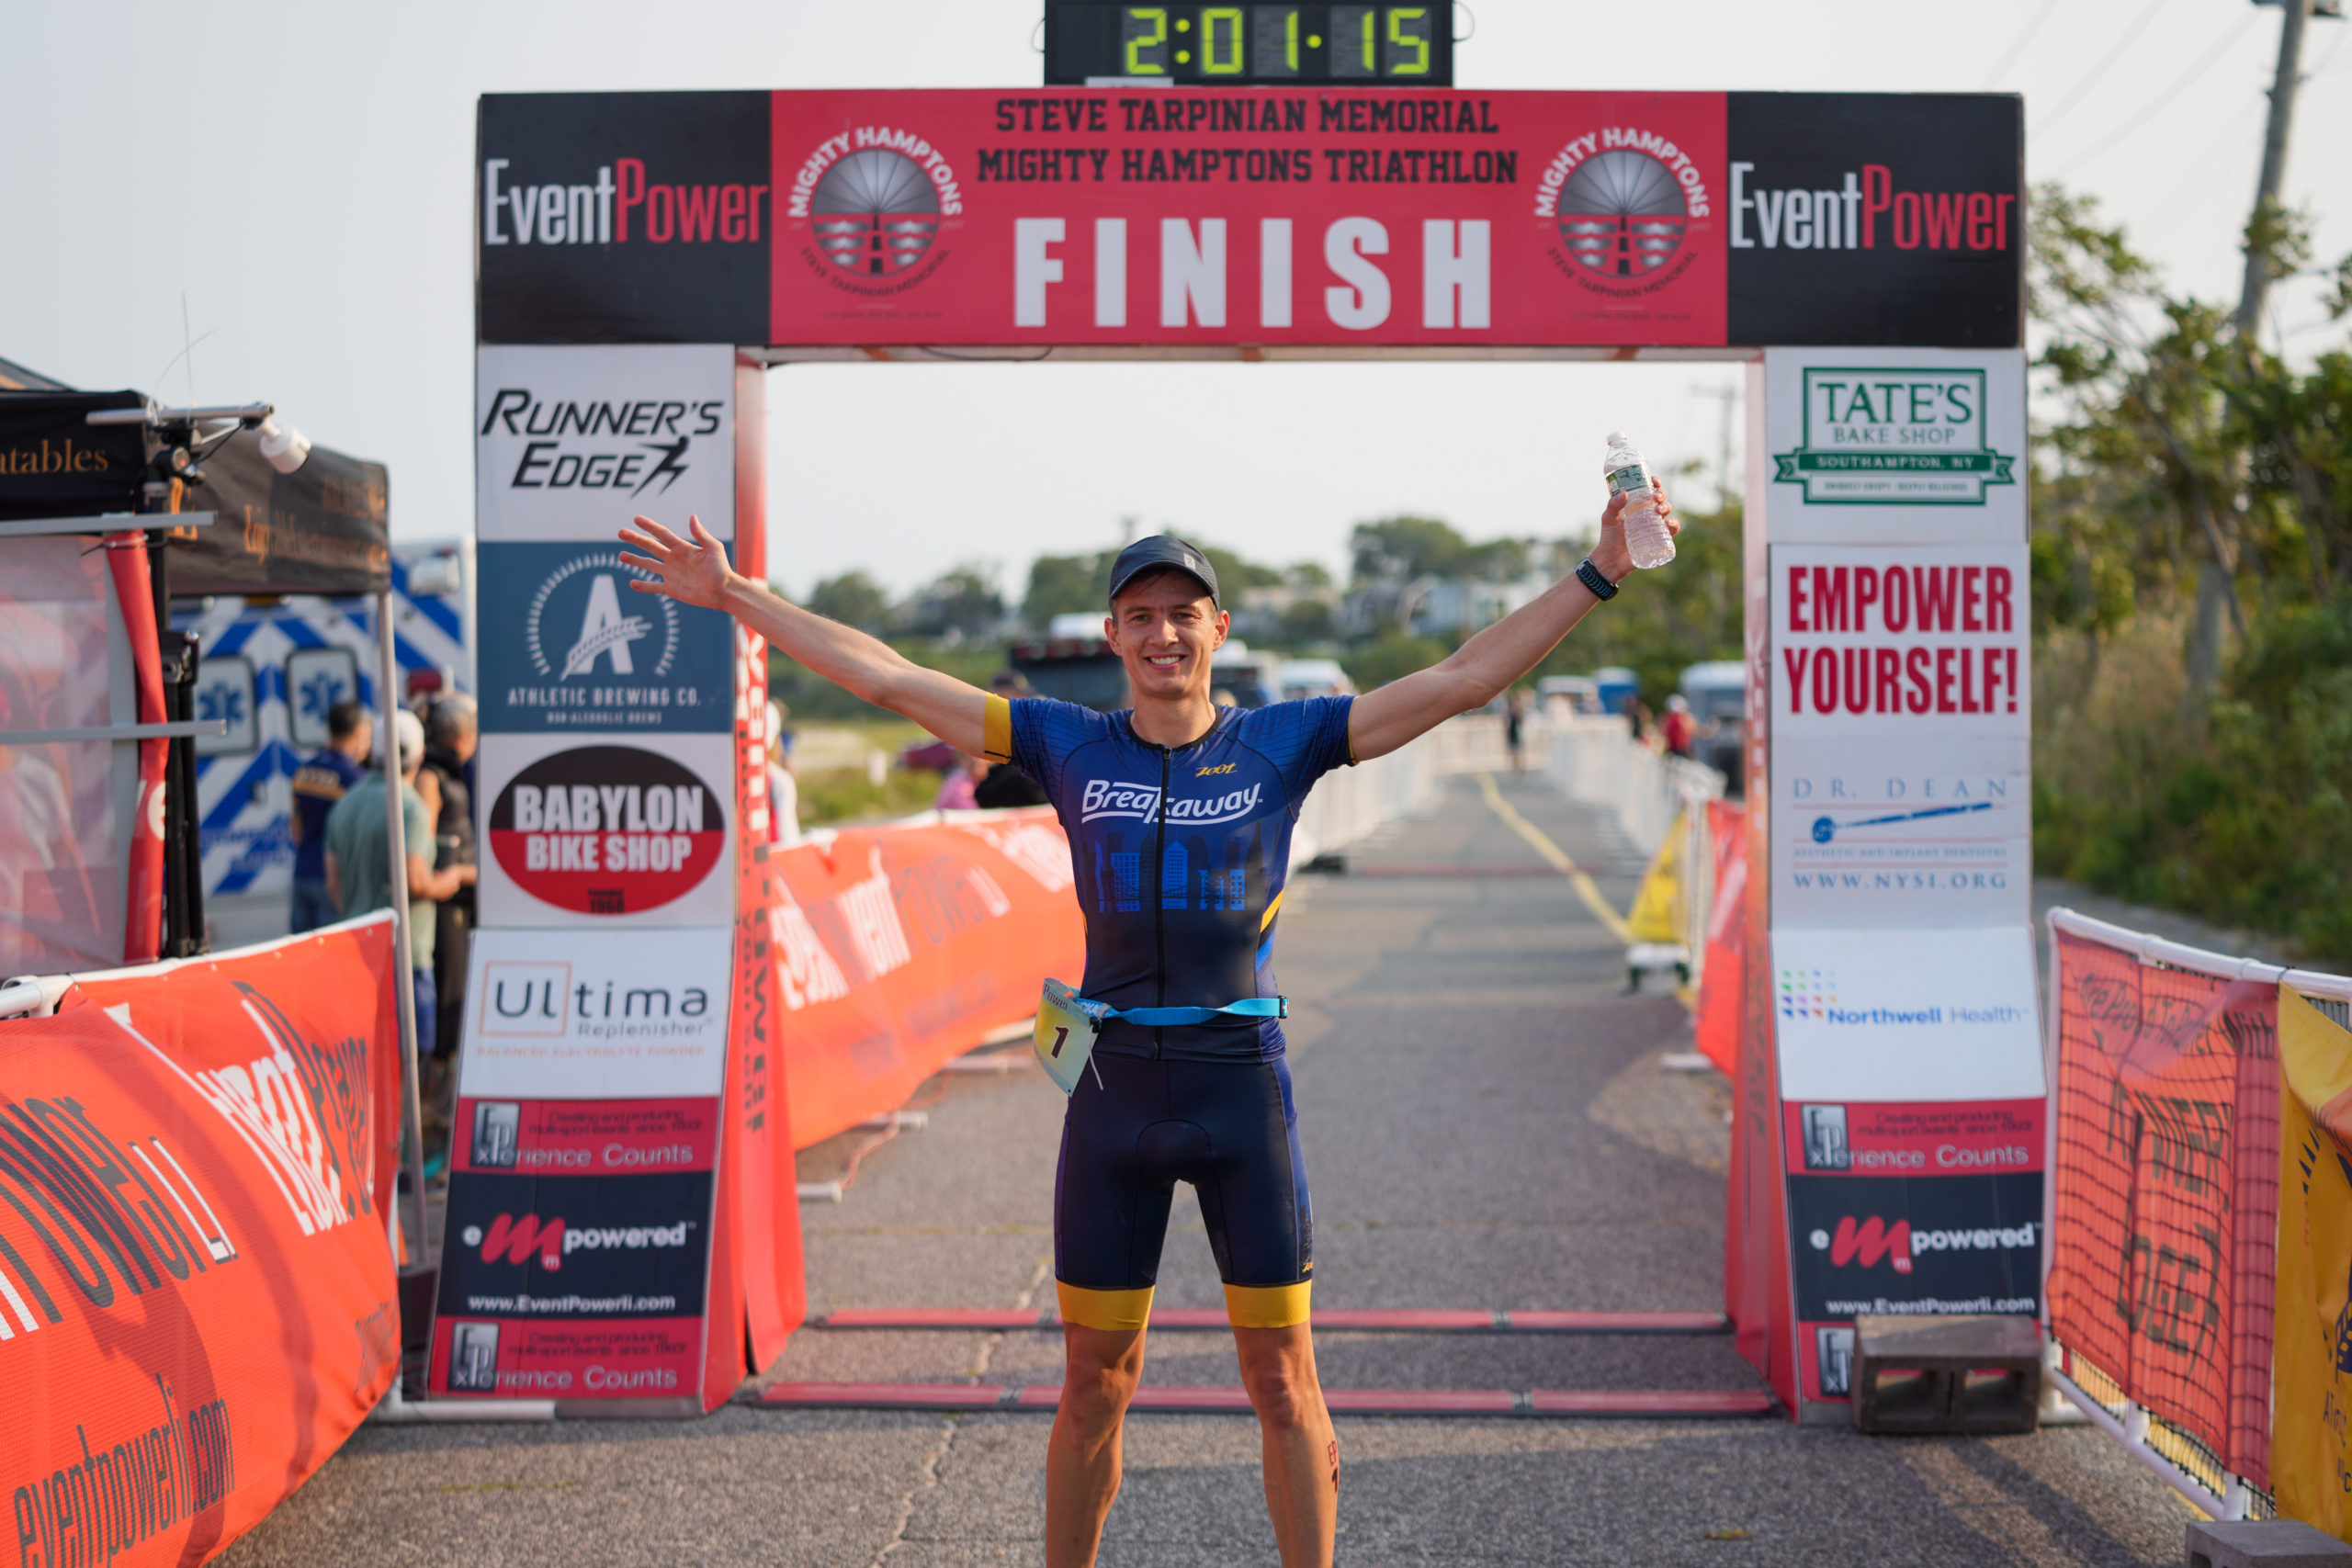 Roman Fedosieiev was the overall champion of the Mighty Hamptons Triathlon, which was Sunday morning at Long Beach in Noyac.